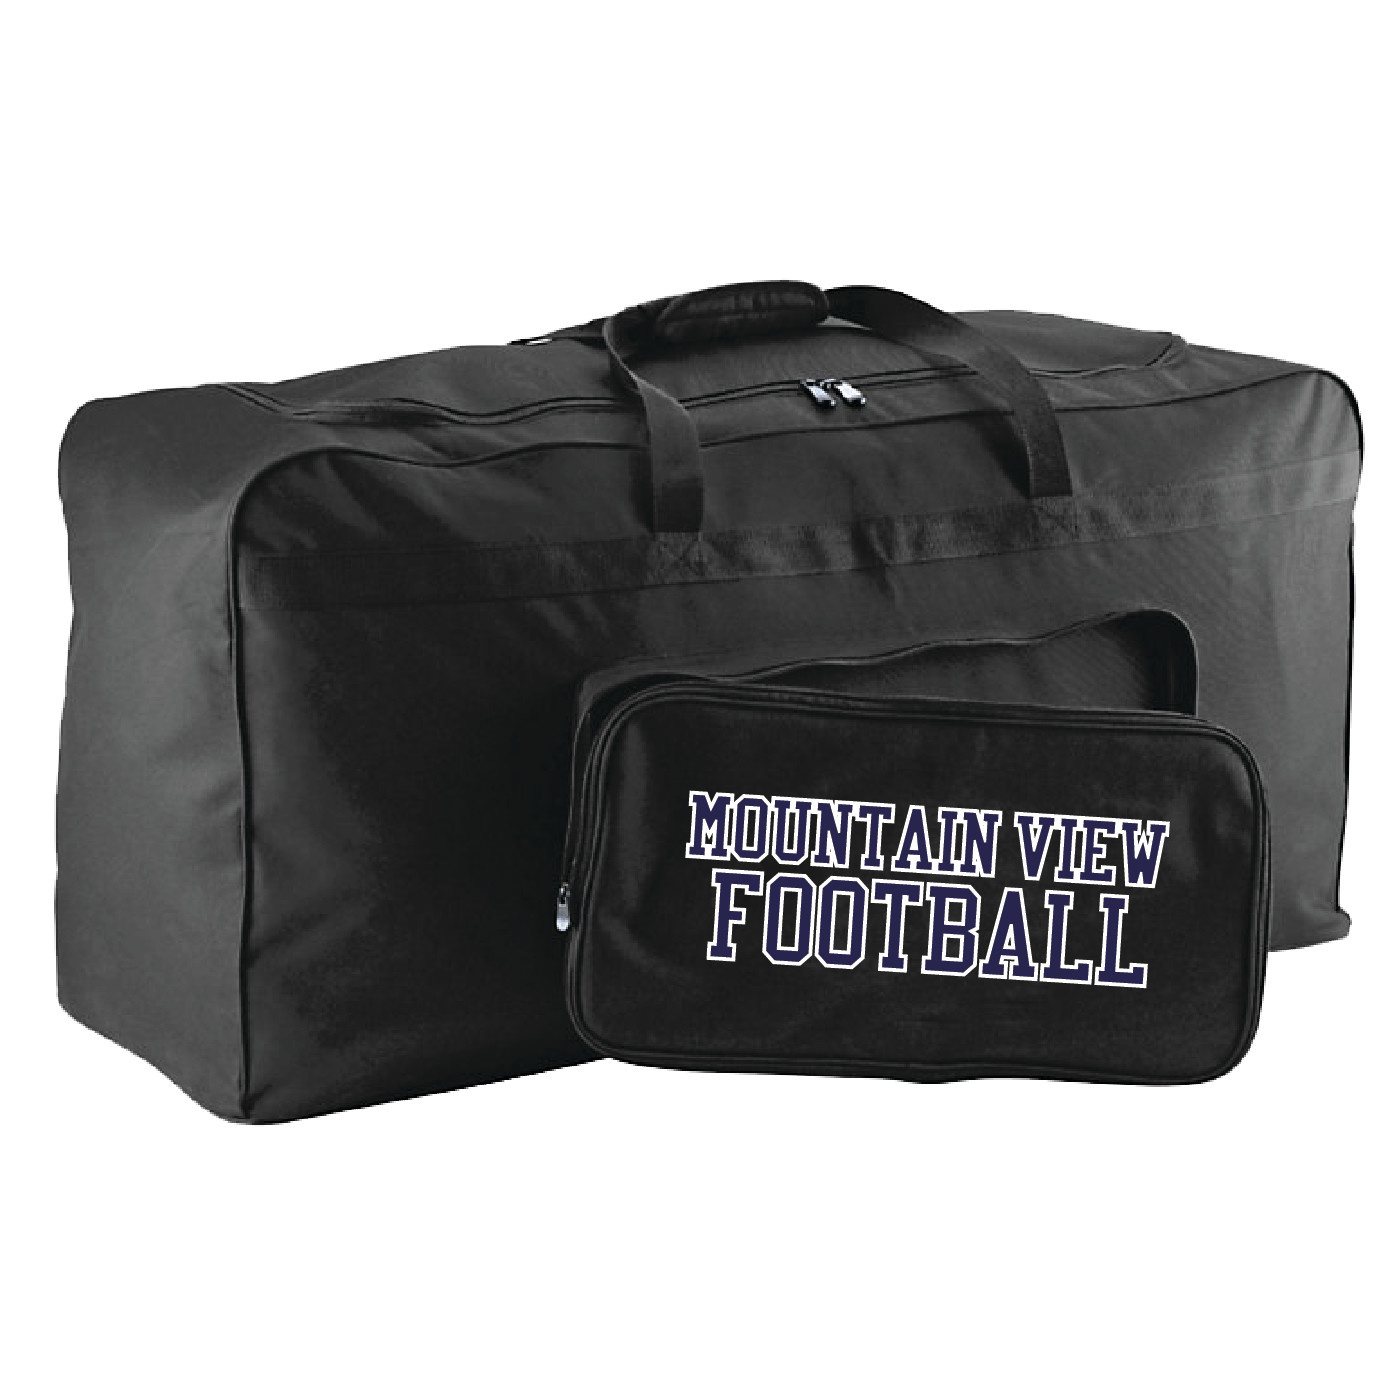 Large Equipment Bag (Black)